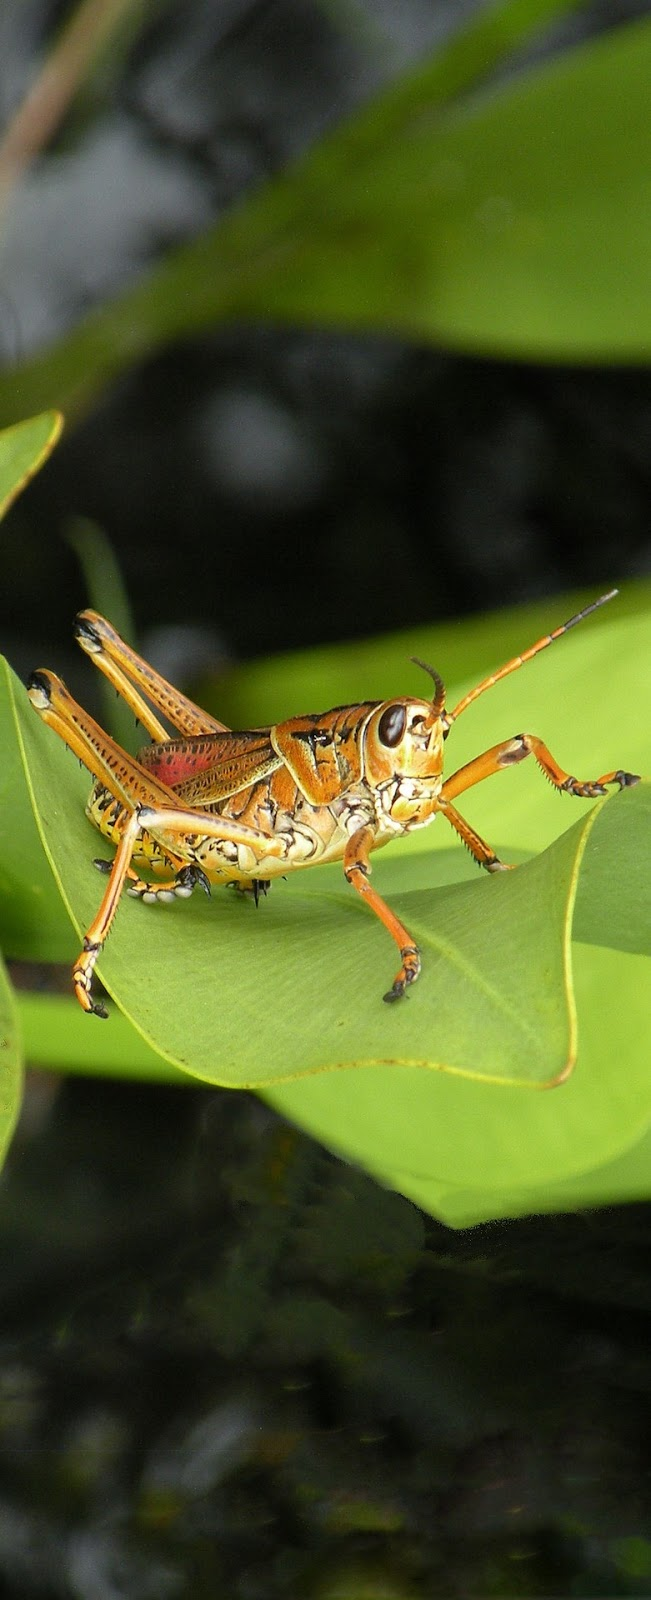 Picture of a grasshopper.